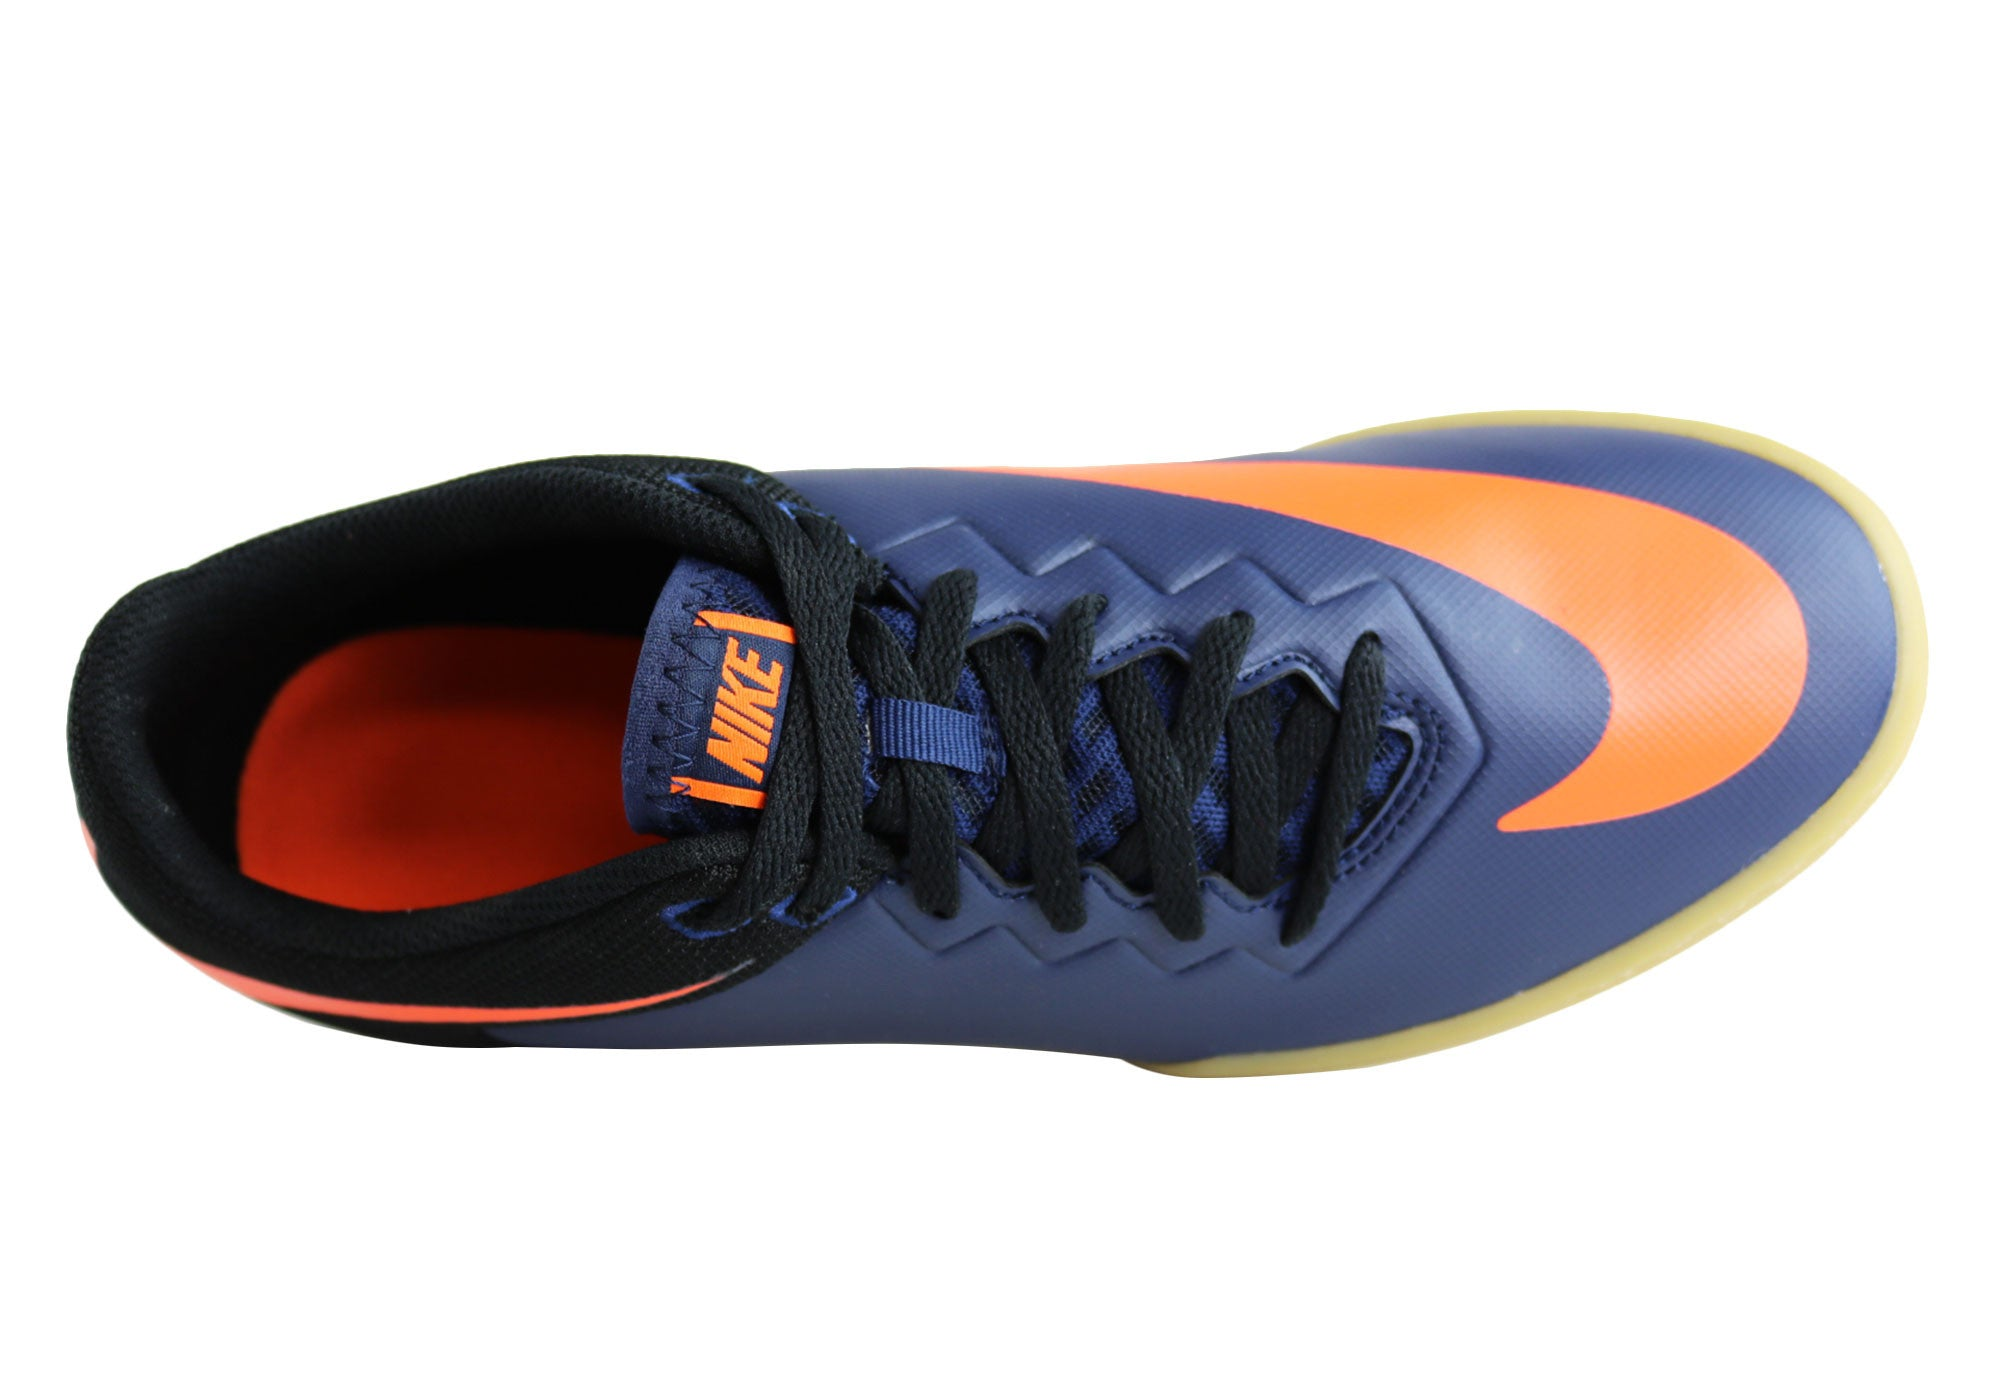 online store 2cba9 9126a ... promo code for new nike mens hypervenomx pro ic indoor soccer shoes  ebay f1409 bafdf